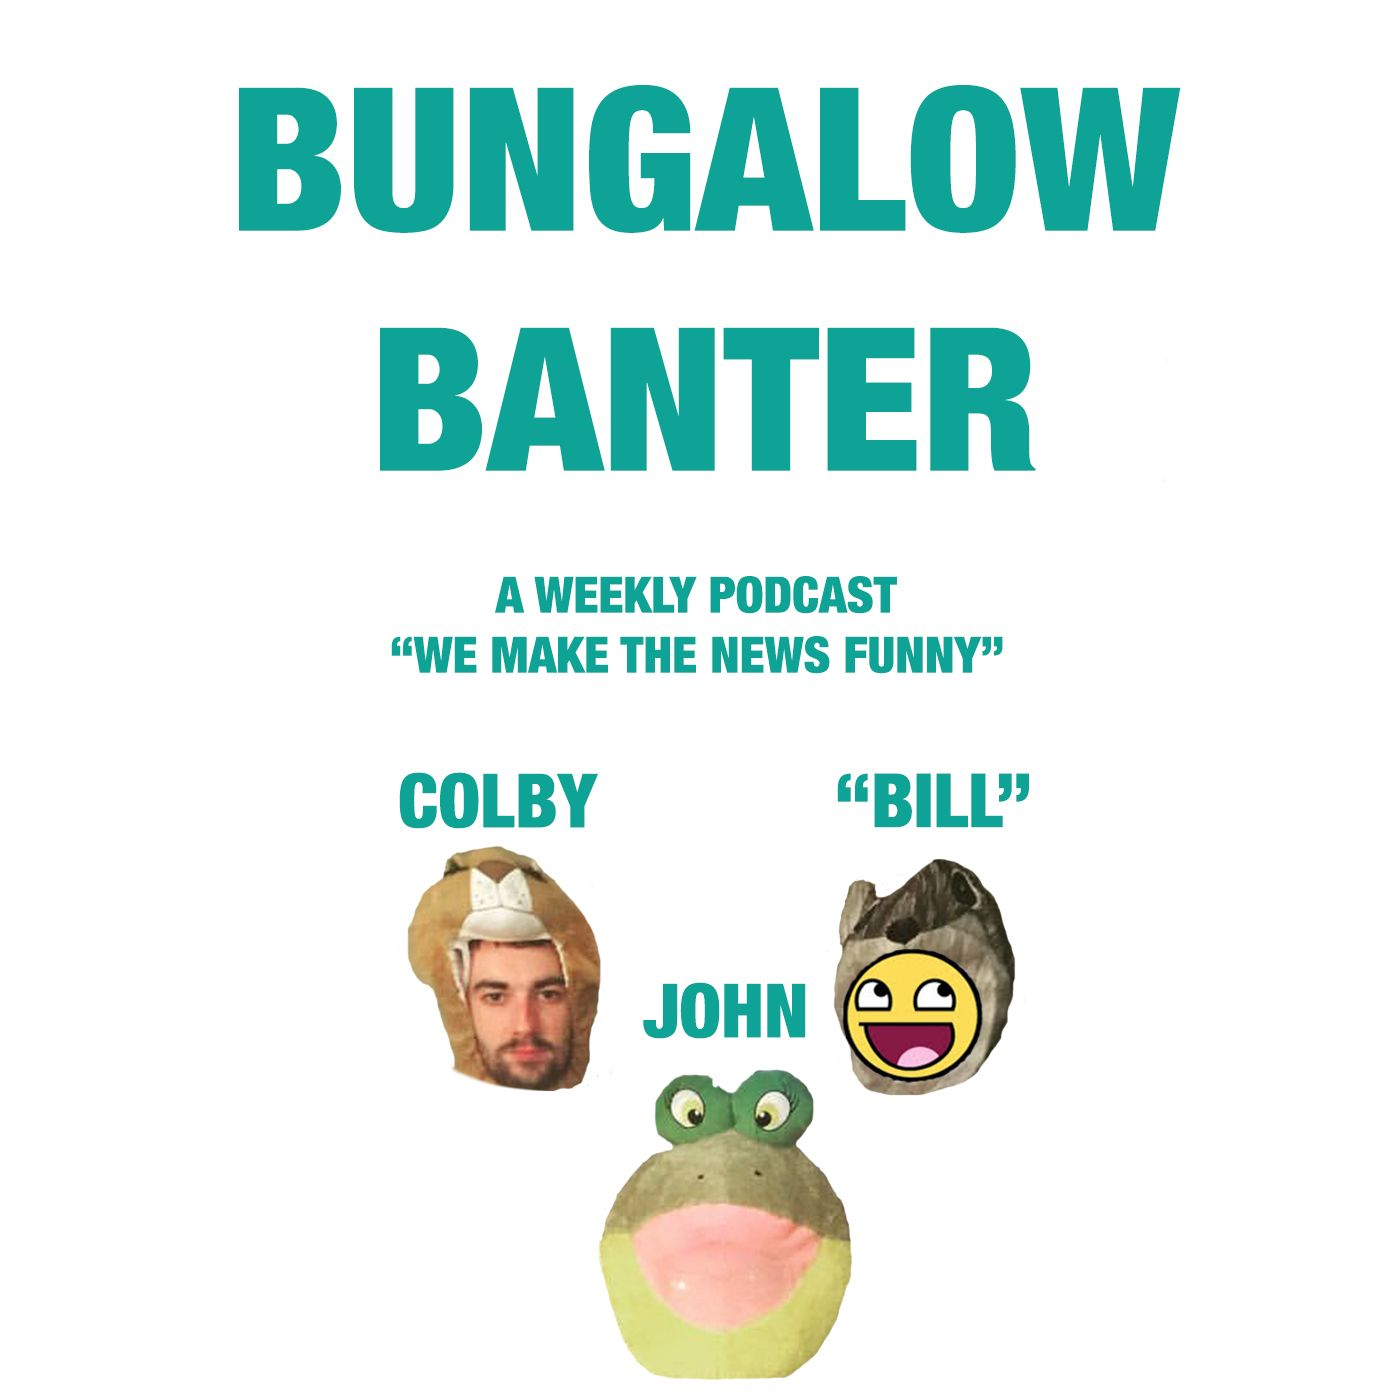 Bungalow Banter Official Podcast